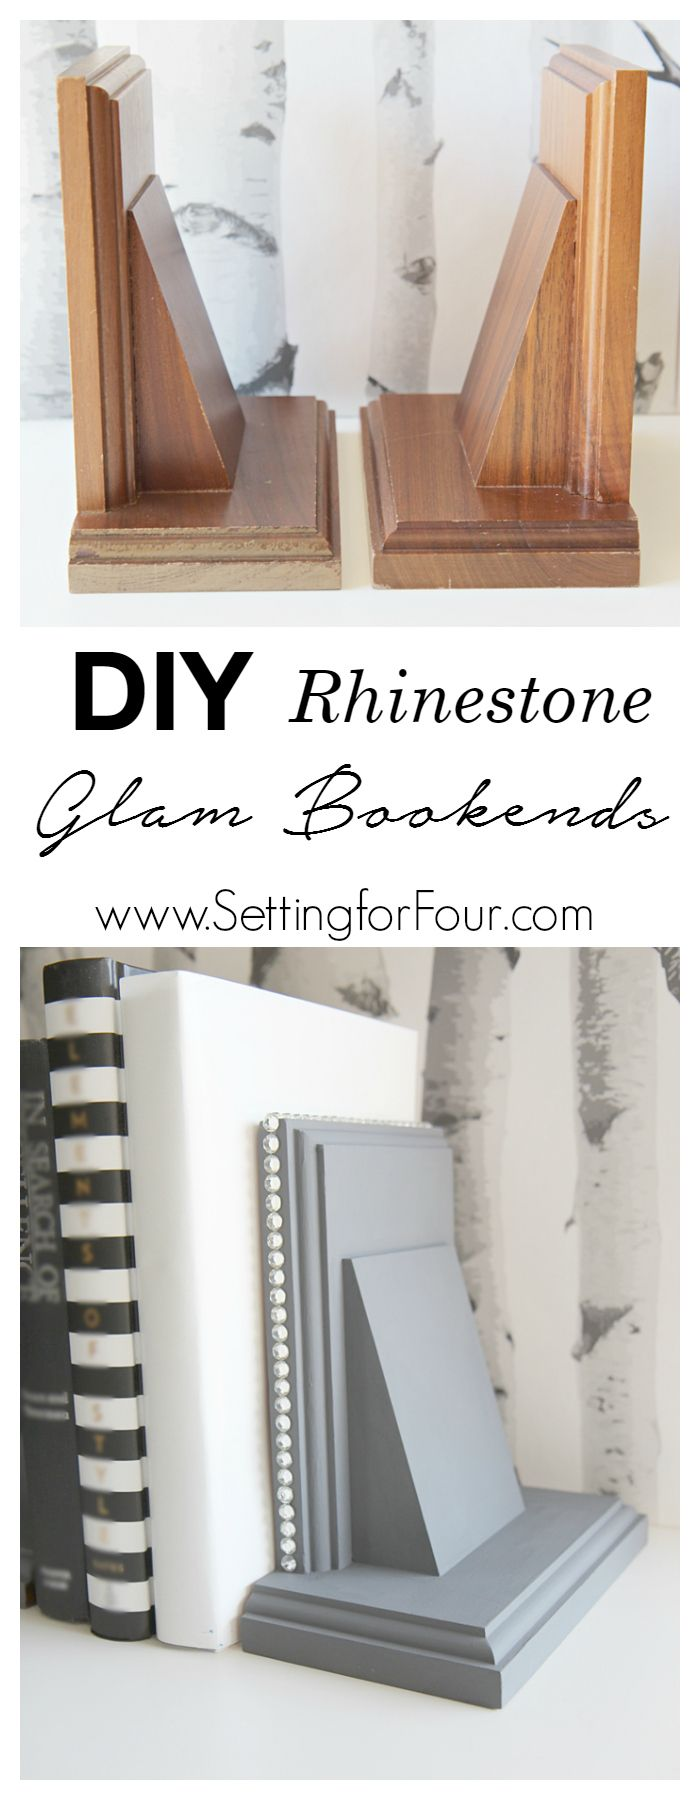 DIY home decor on a budget - How to make DIY Rhinestone Glam Bookends! See the glam makeover I gave two boring thrift store bookends using chalky finish paint and rhinestone studding! Great gift idea. www.settingforfour.com